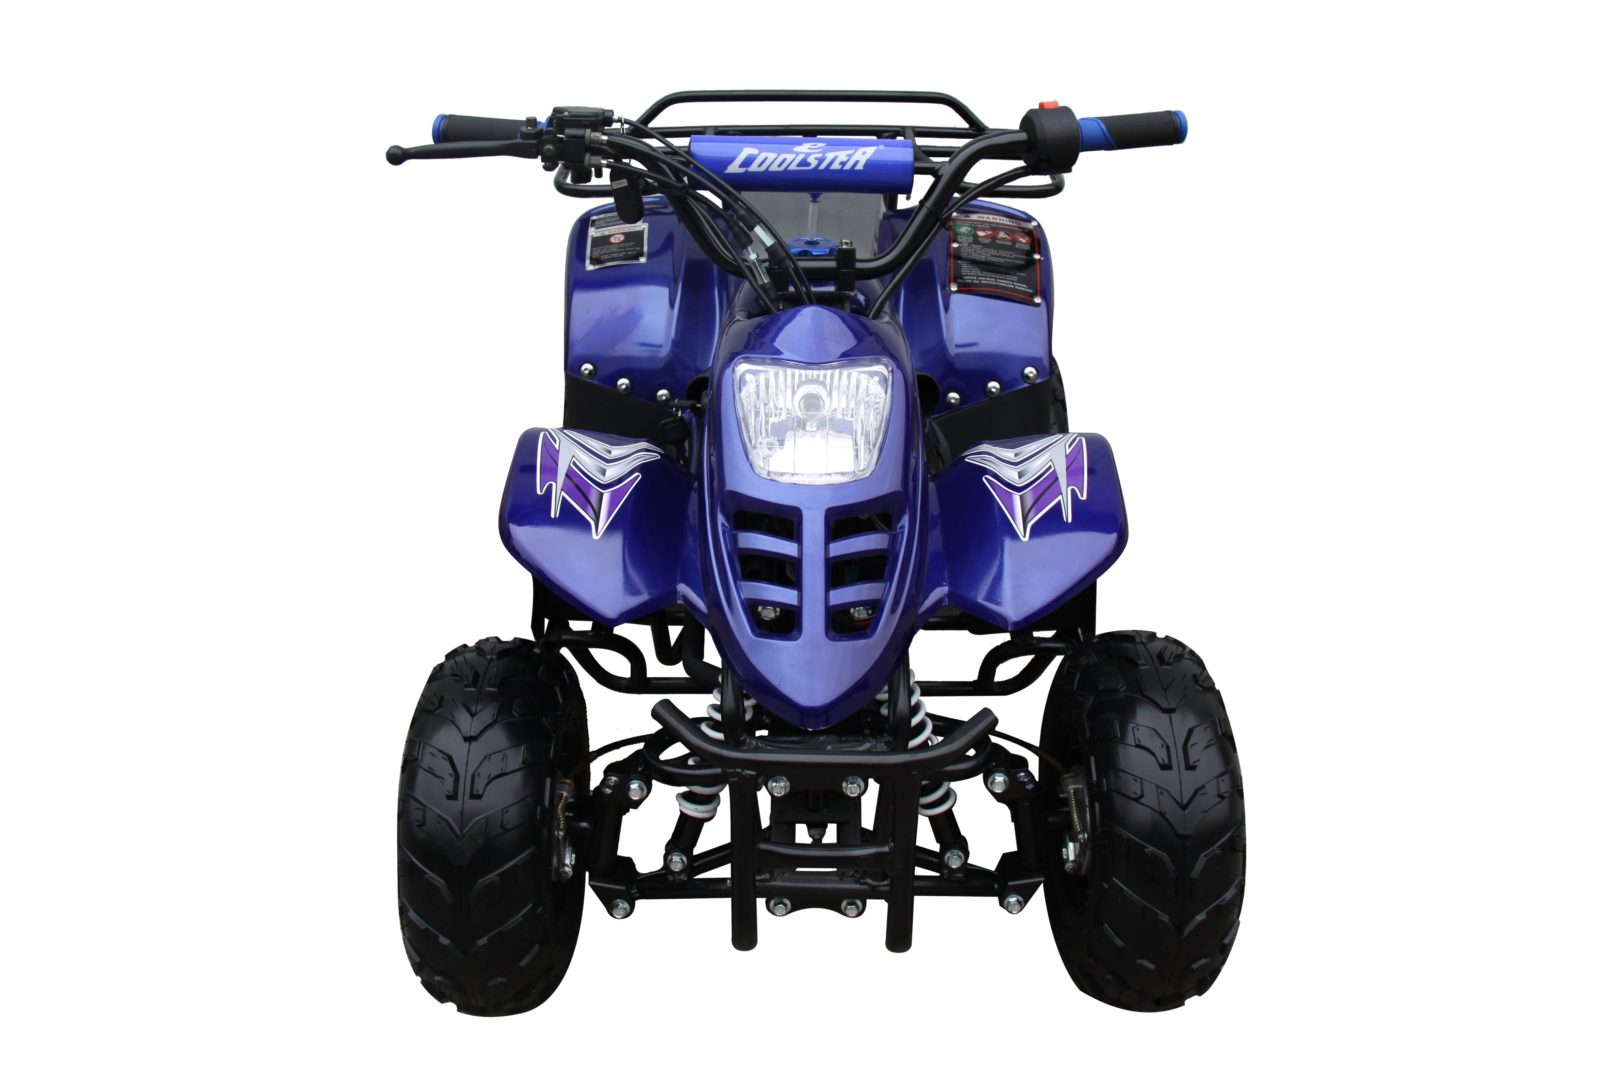 Kids Atv For Sale >> 110cc Tracker Kids Atv Fully Assembled Ready To Ridecoolster Tracker Kids Atvs Include Remote Kill Speed Governor Electric Start Max Offroad